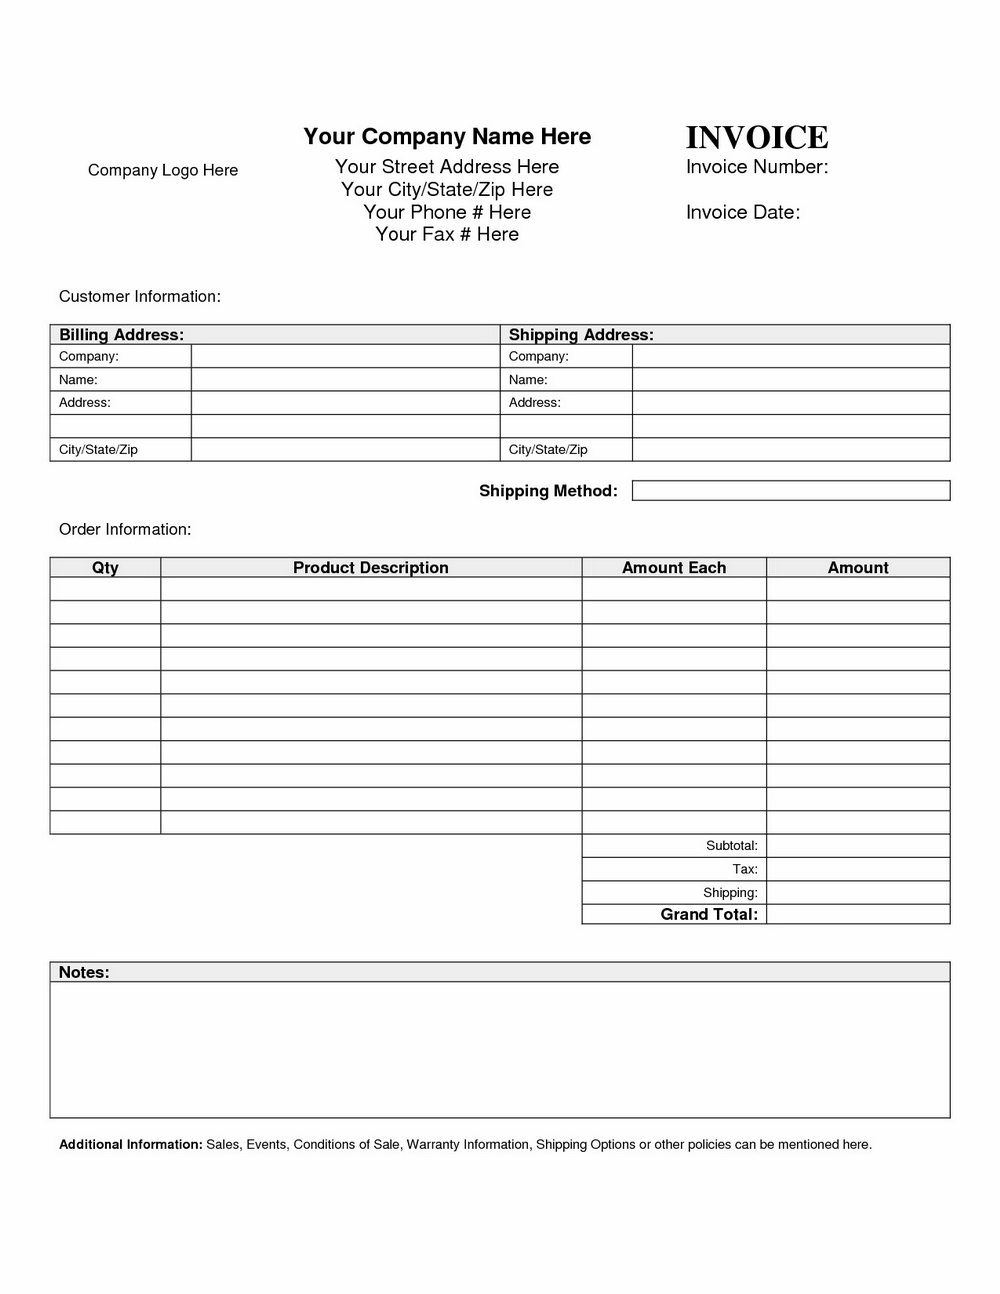 Mortgage Statement Template Excel